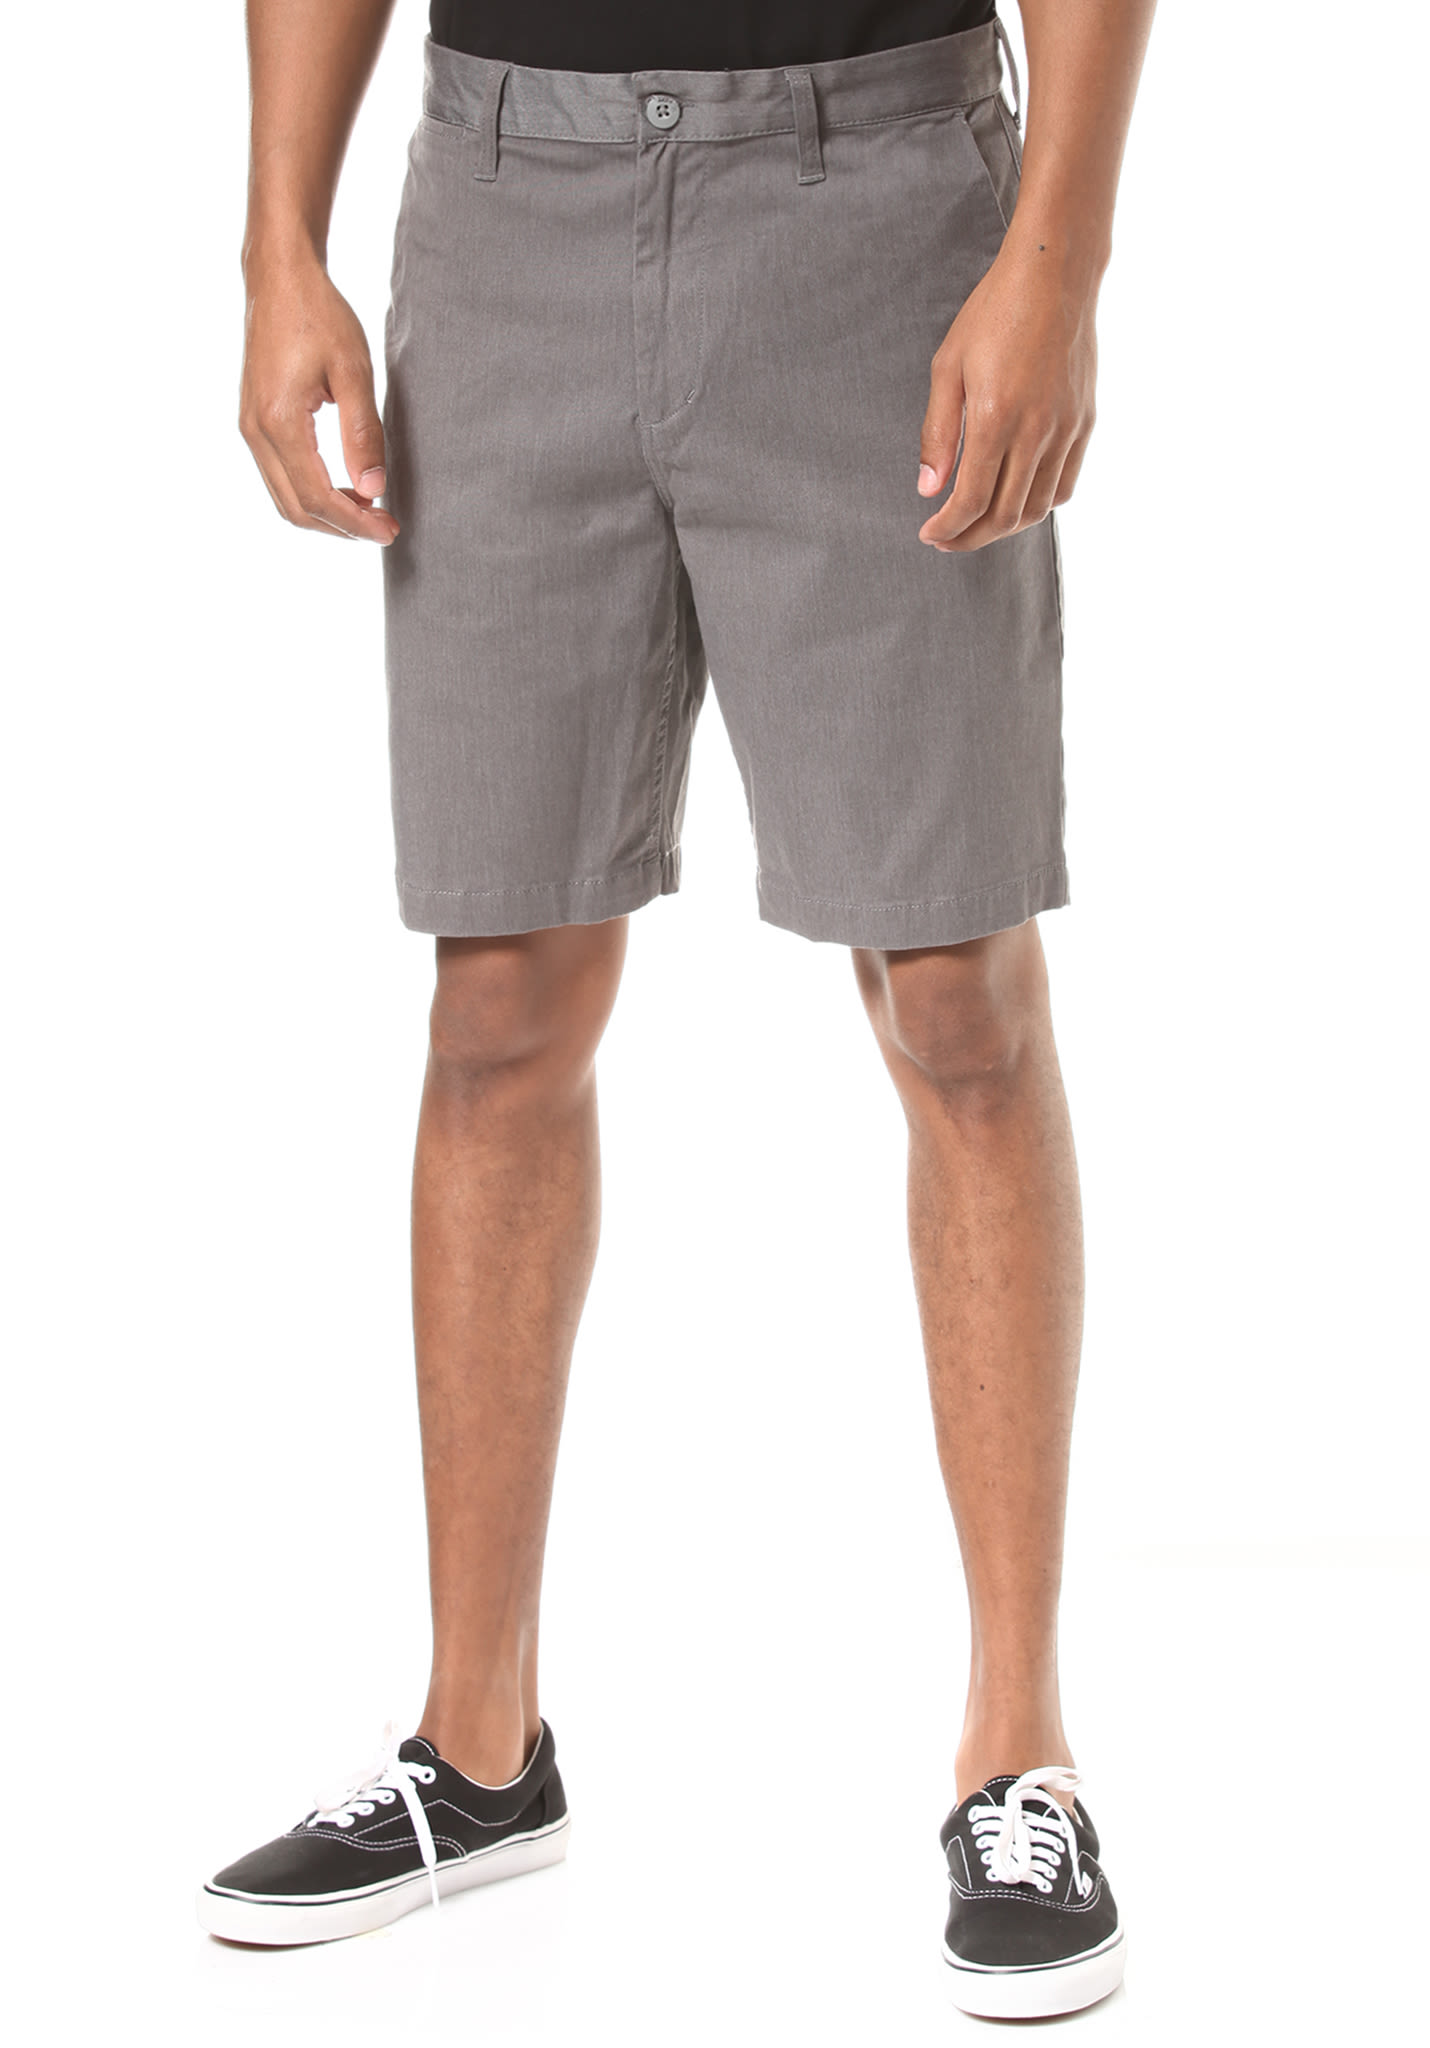 63758cf69d5 DC Work Hea Straight - Chino Shorts for Men - Grey - Planet Sports